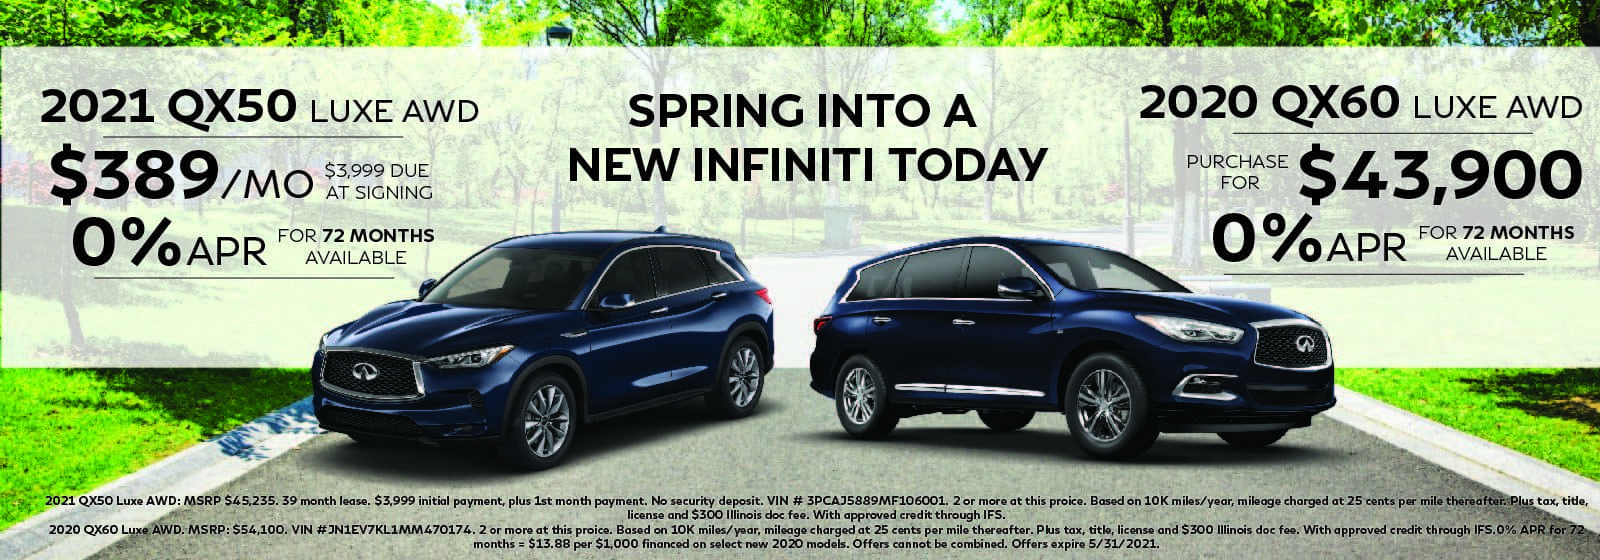 QX50 Lease offer and QX60 purchase offer